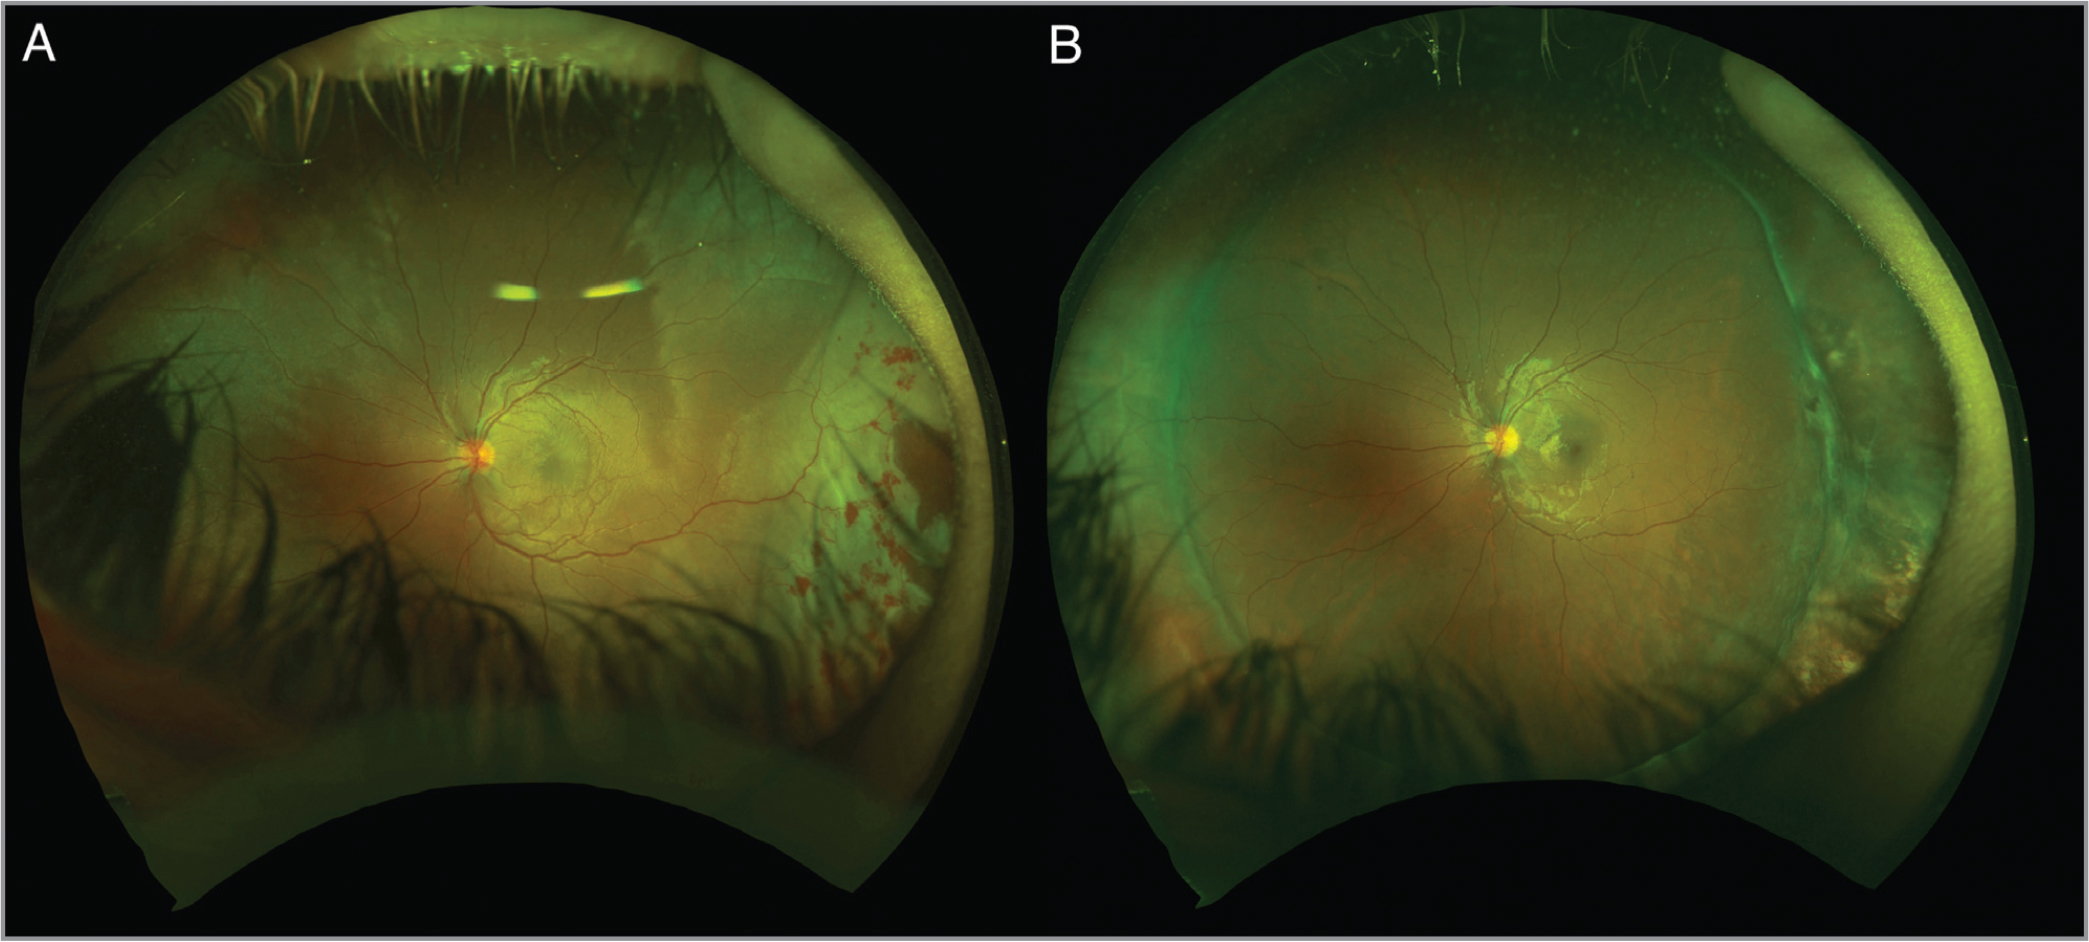 Case 1: Ultra-widefield imaging of the left eye (A) at presentation showing macular and peripheral superotemporal commotio retinae along with peripheral retinal defects and intra-retinal hemorrhage. (B) One year postoperatively showing encircling scleral buckle with retinal scar in the inferotemporal periphery.